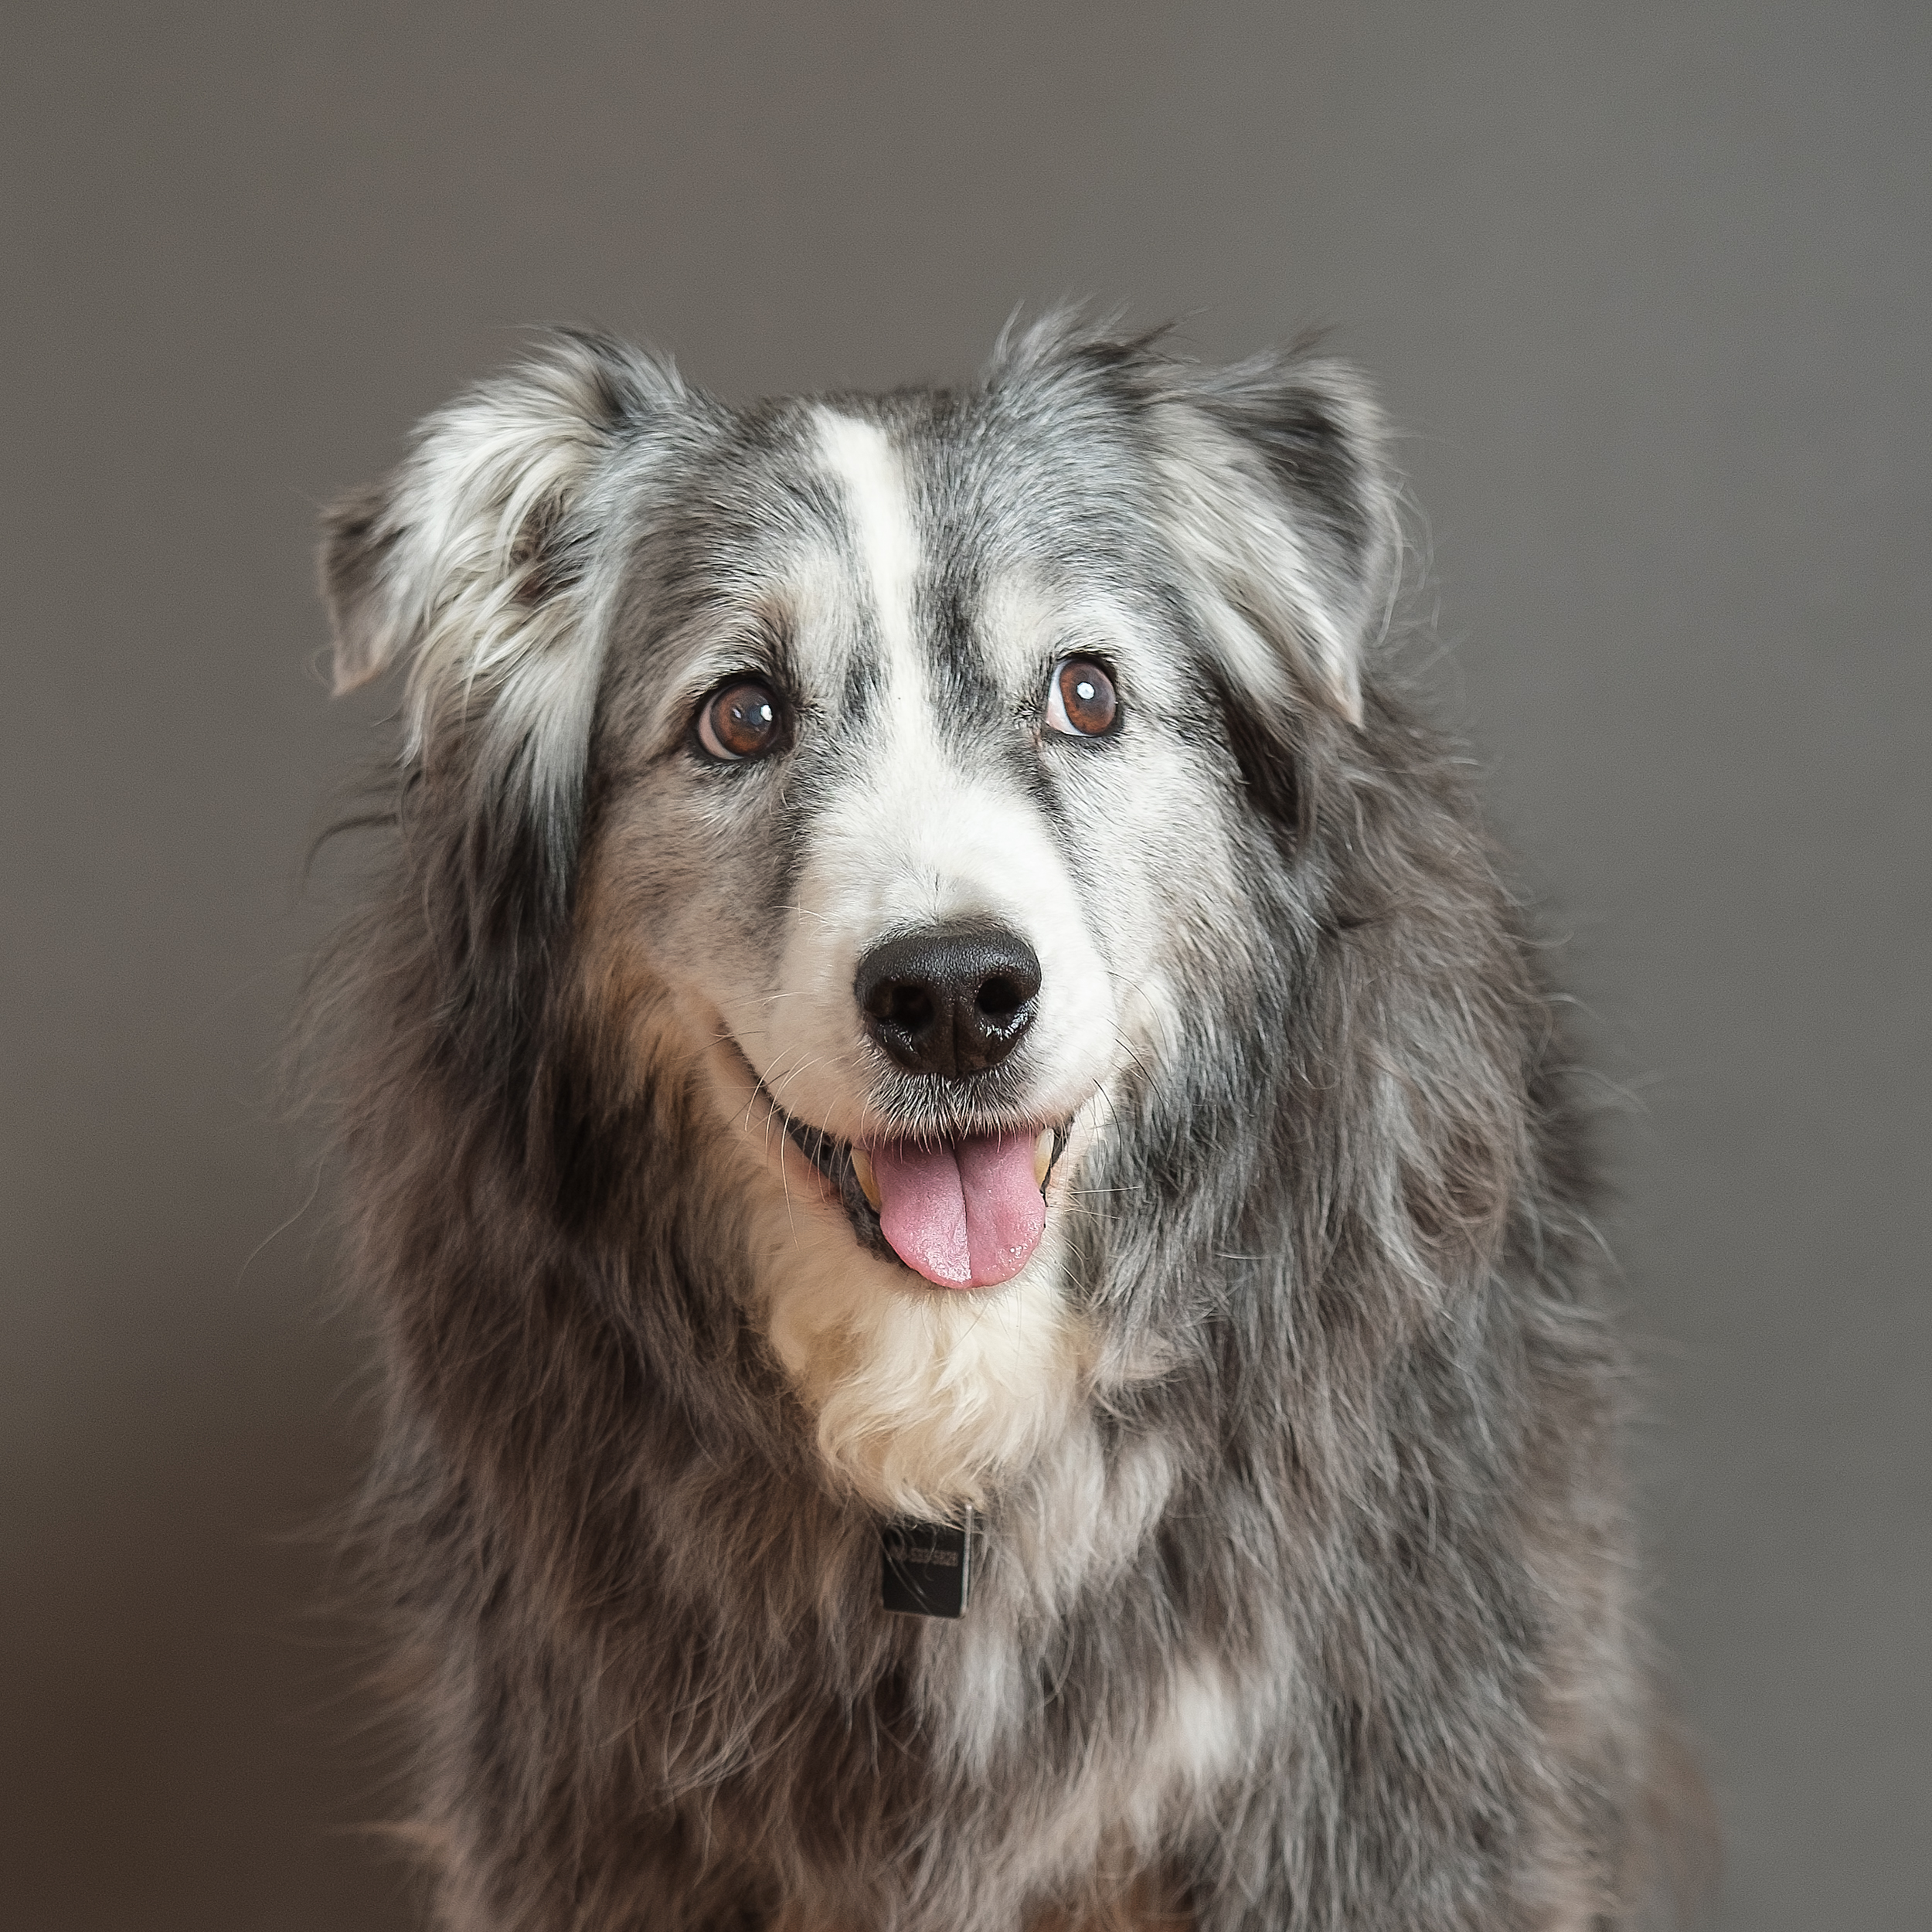 Kyle - Kyle is a 16 years young Australian Shepherd. He was rescued from a cat rescue by his family when his was a puppy. He has his own Instagram account appropriately named...@meowmeowd 🤣🐶